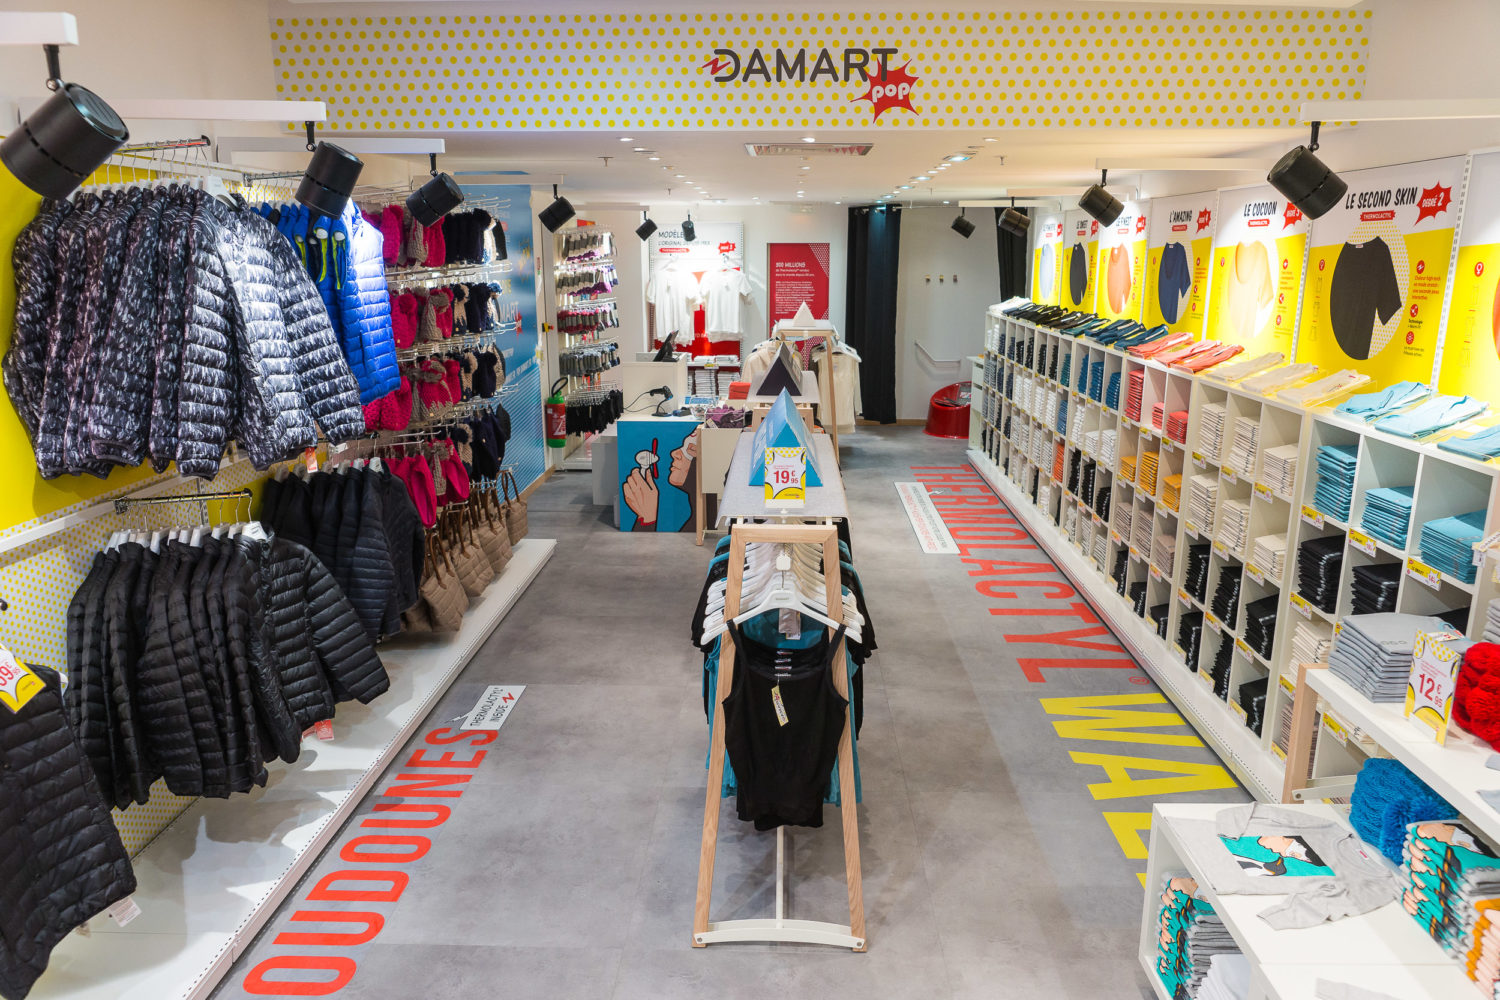 pop-up store damart